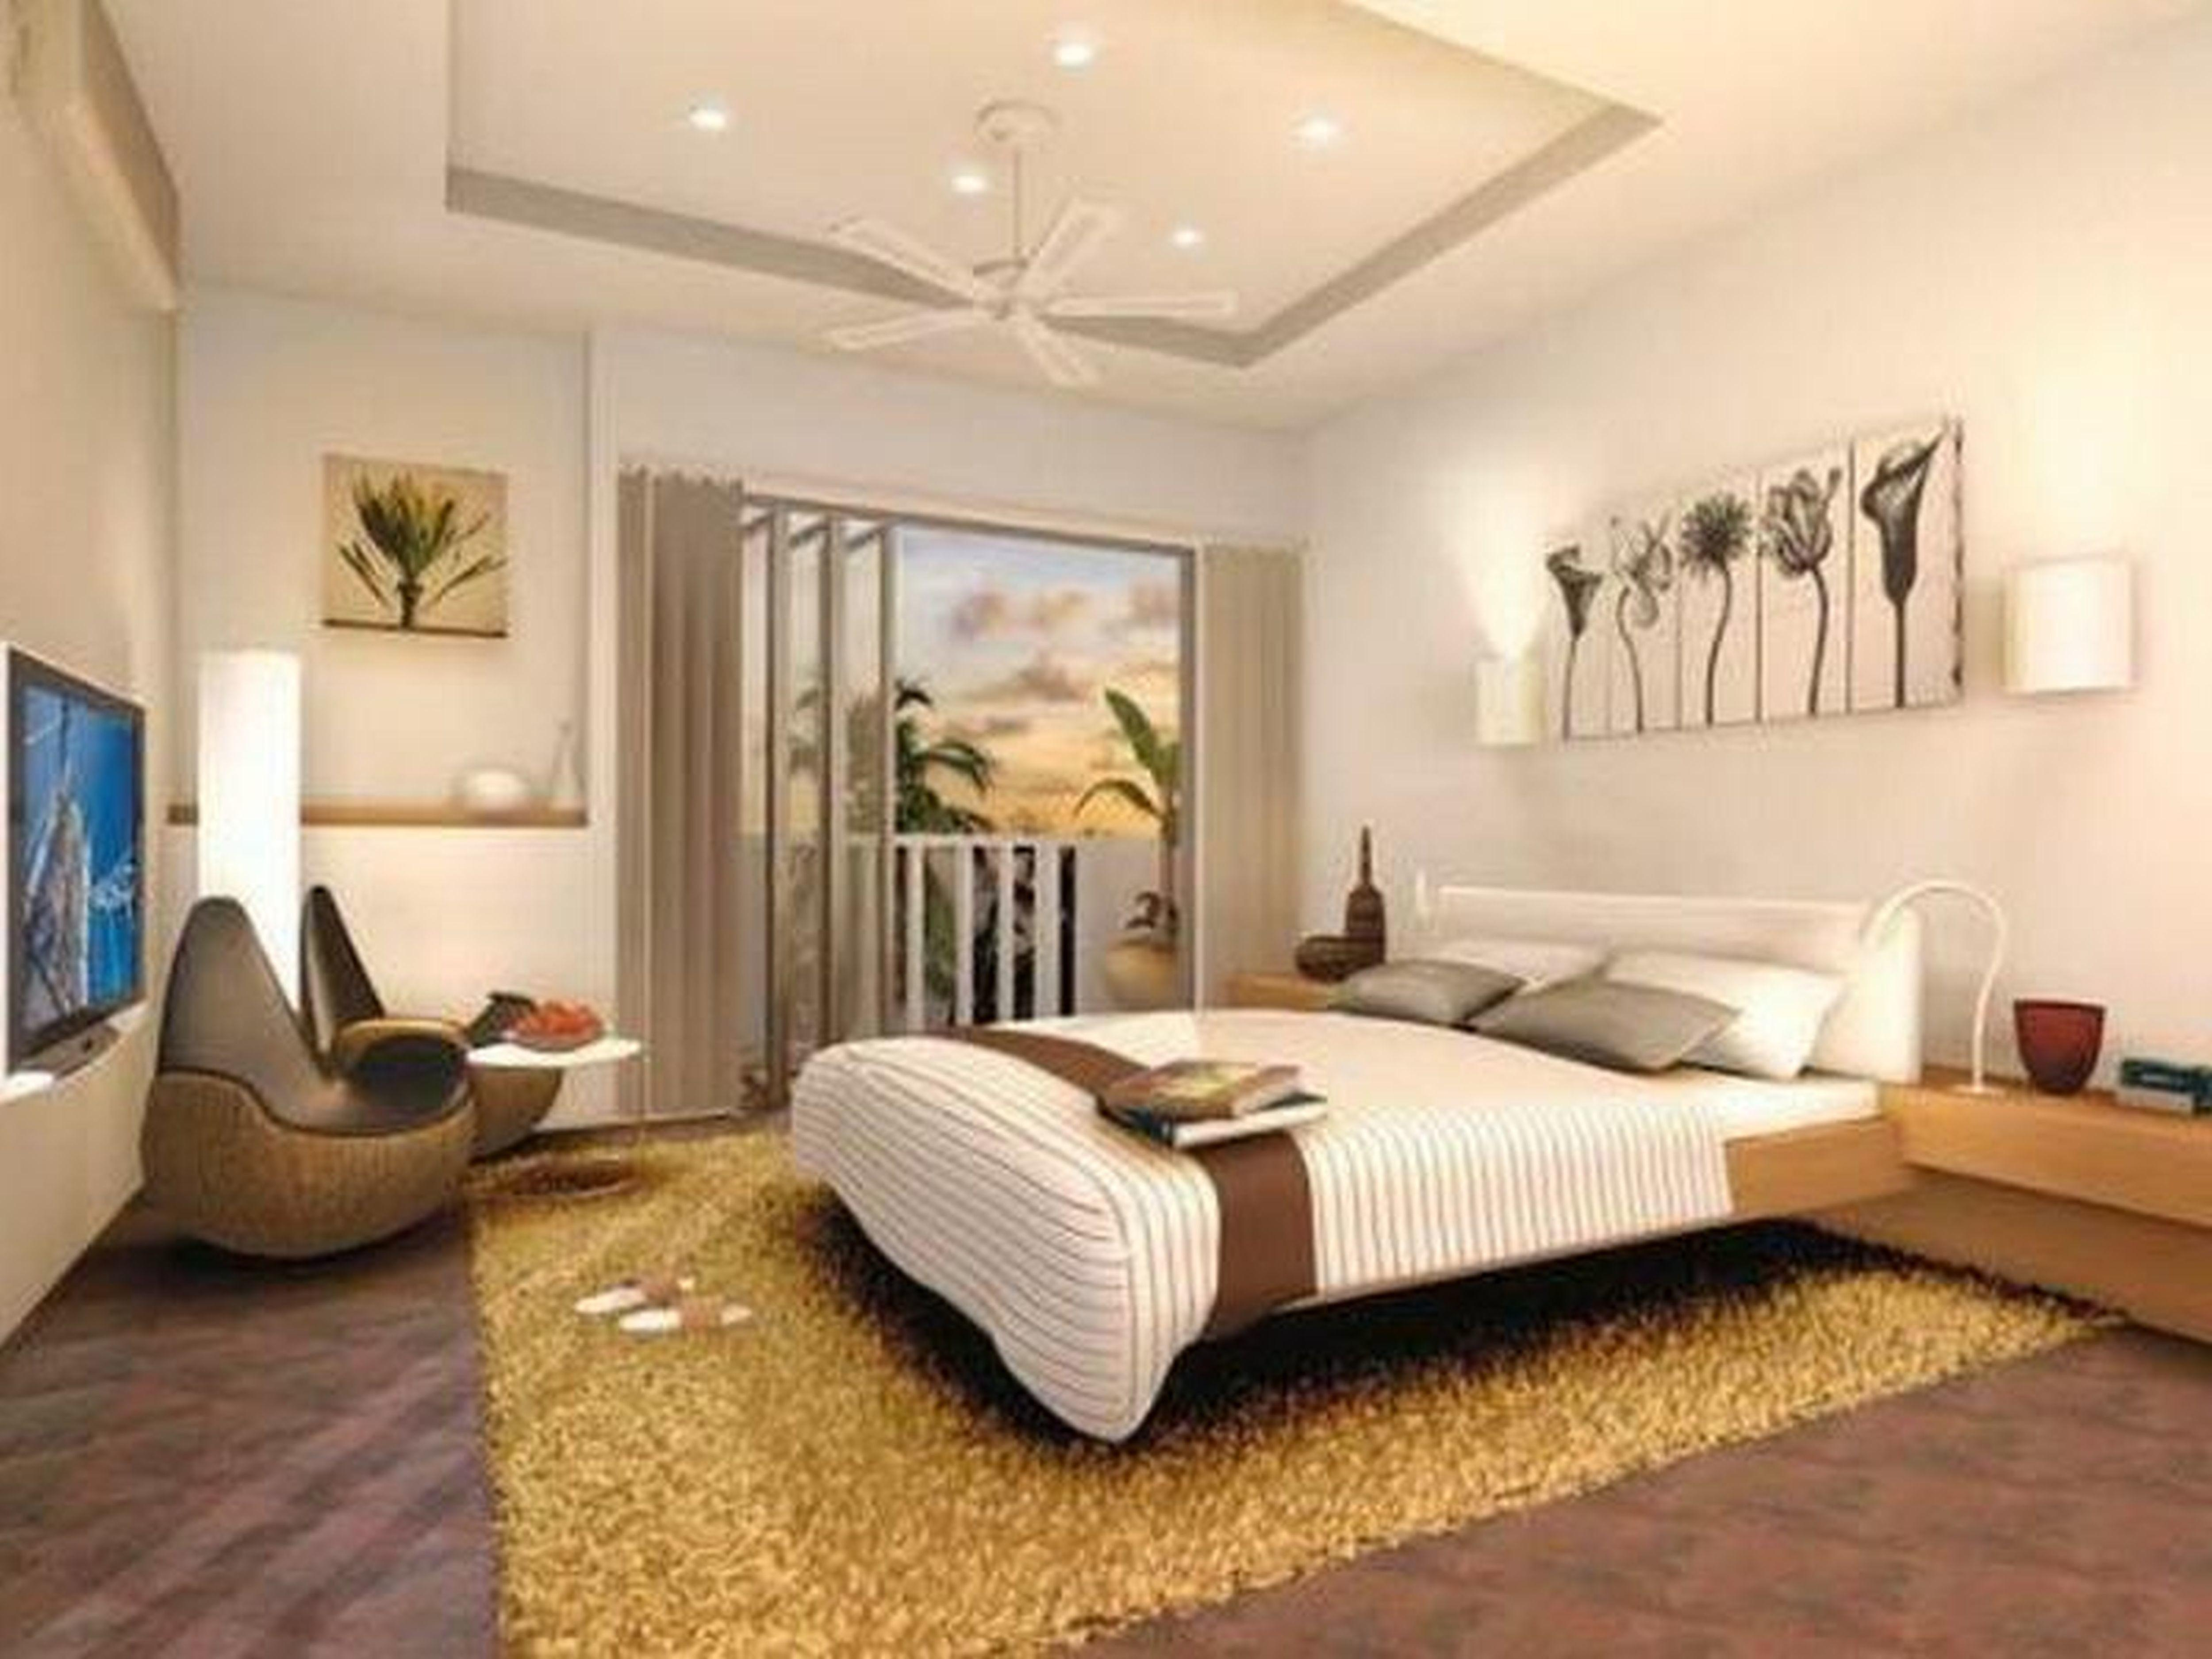 Design Ideas Modern Contemporary Eclectic Decorating